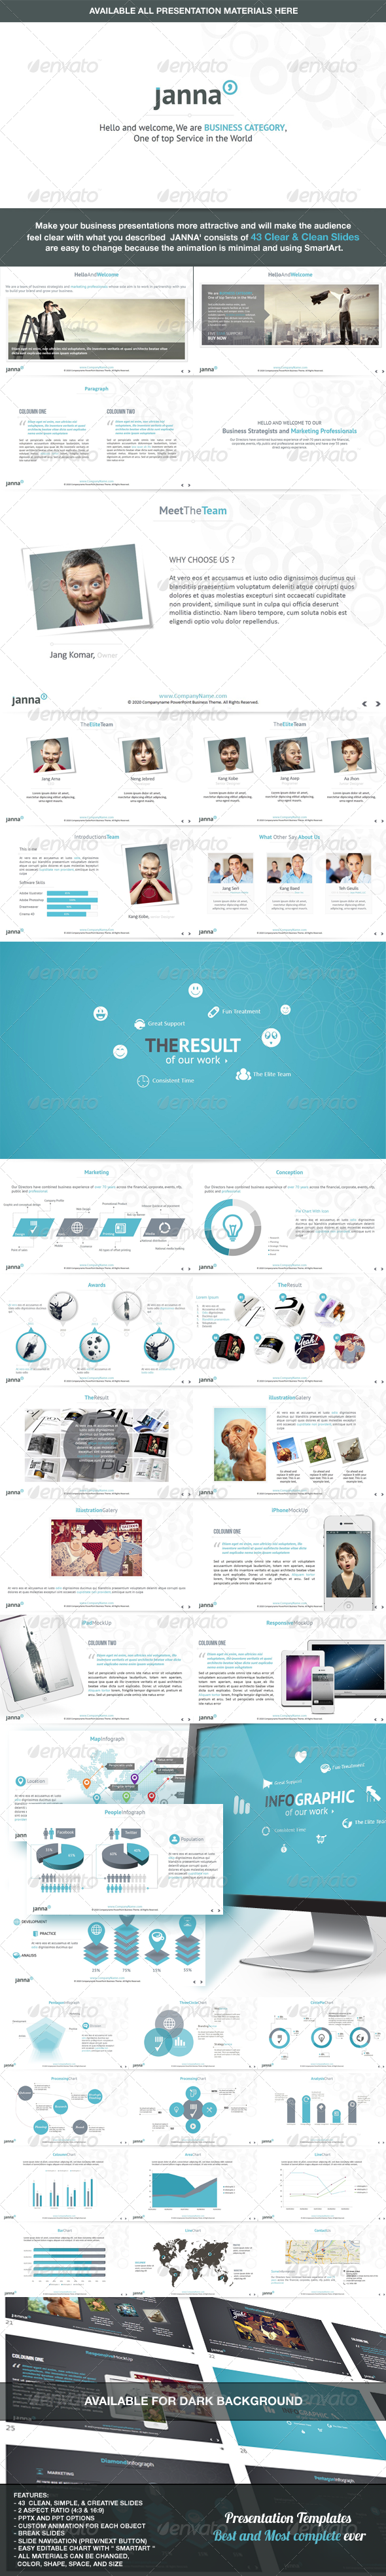 GraphicRiver Janna Clear & Clean Powerpoint Template 5150946